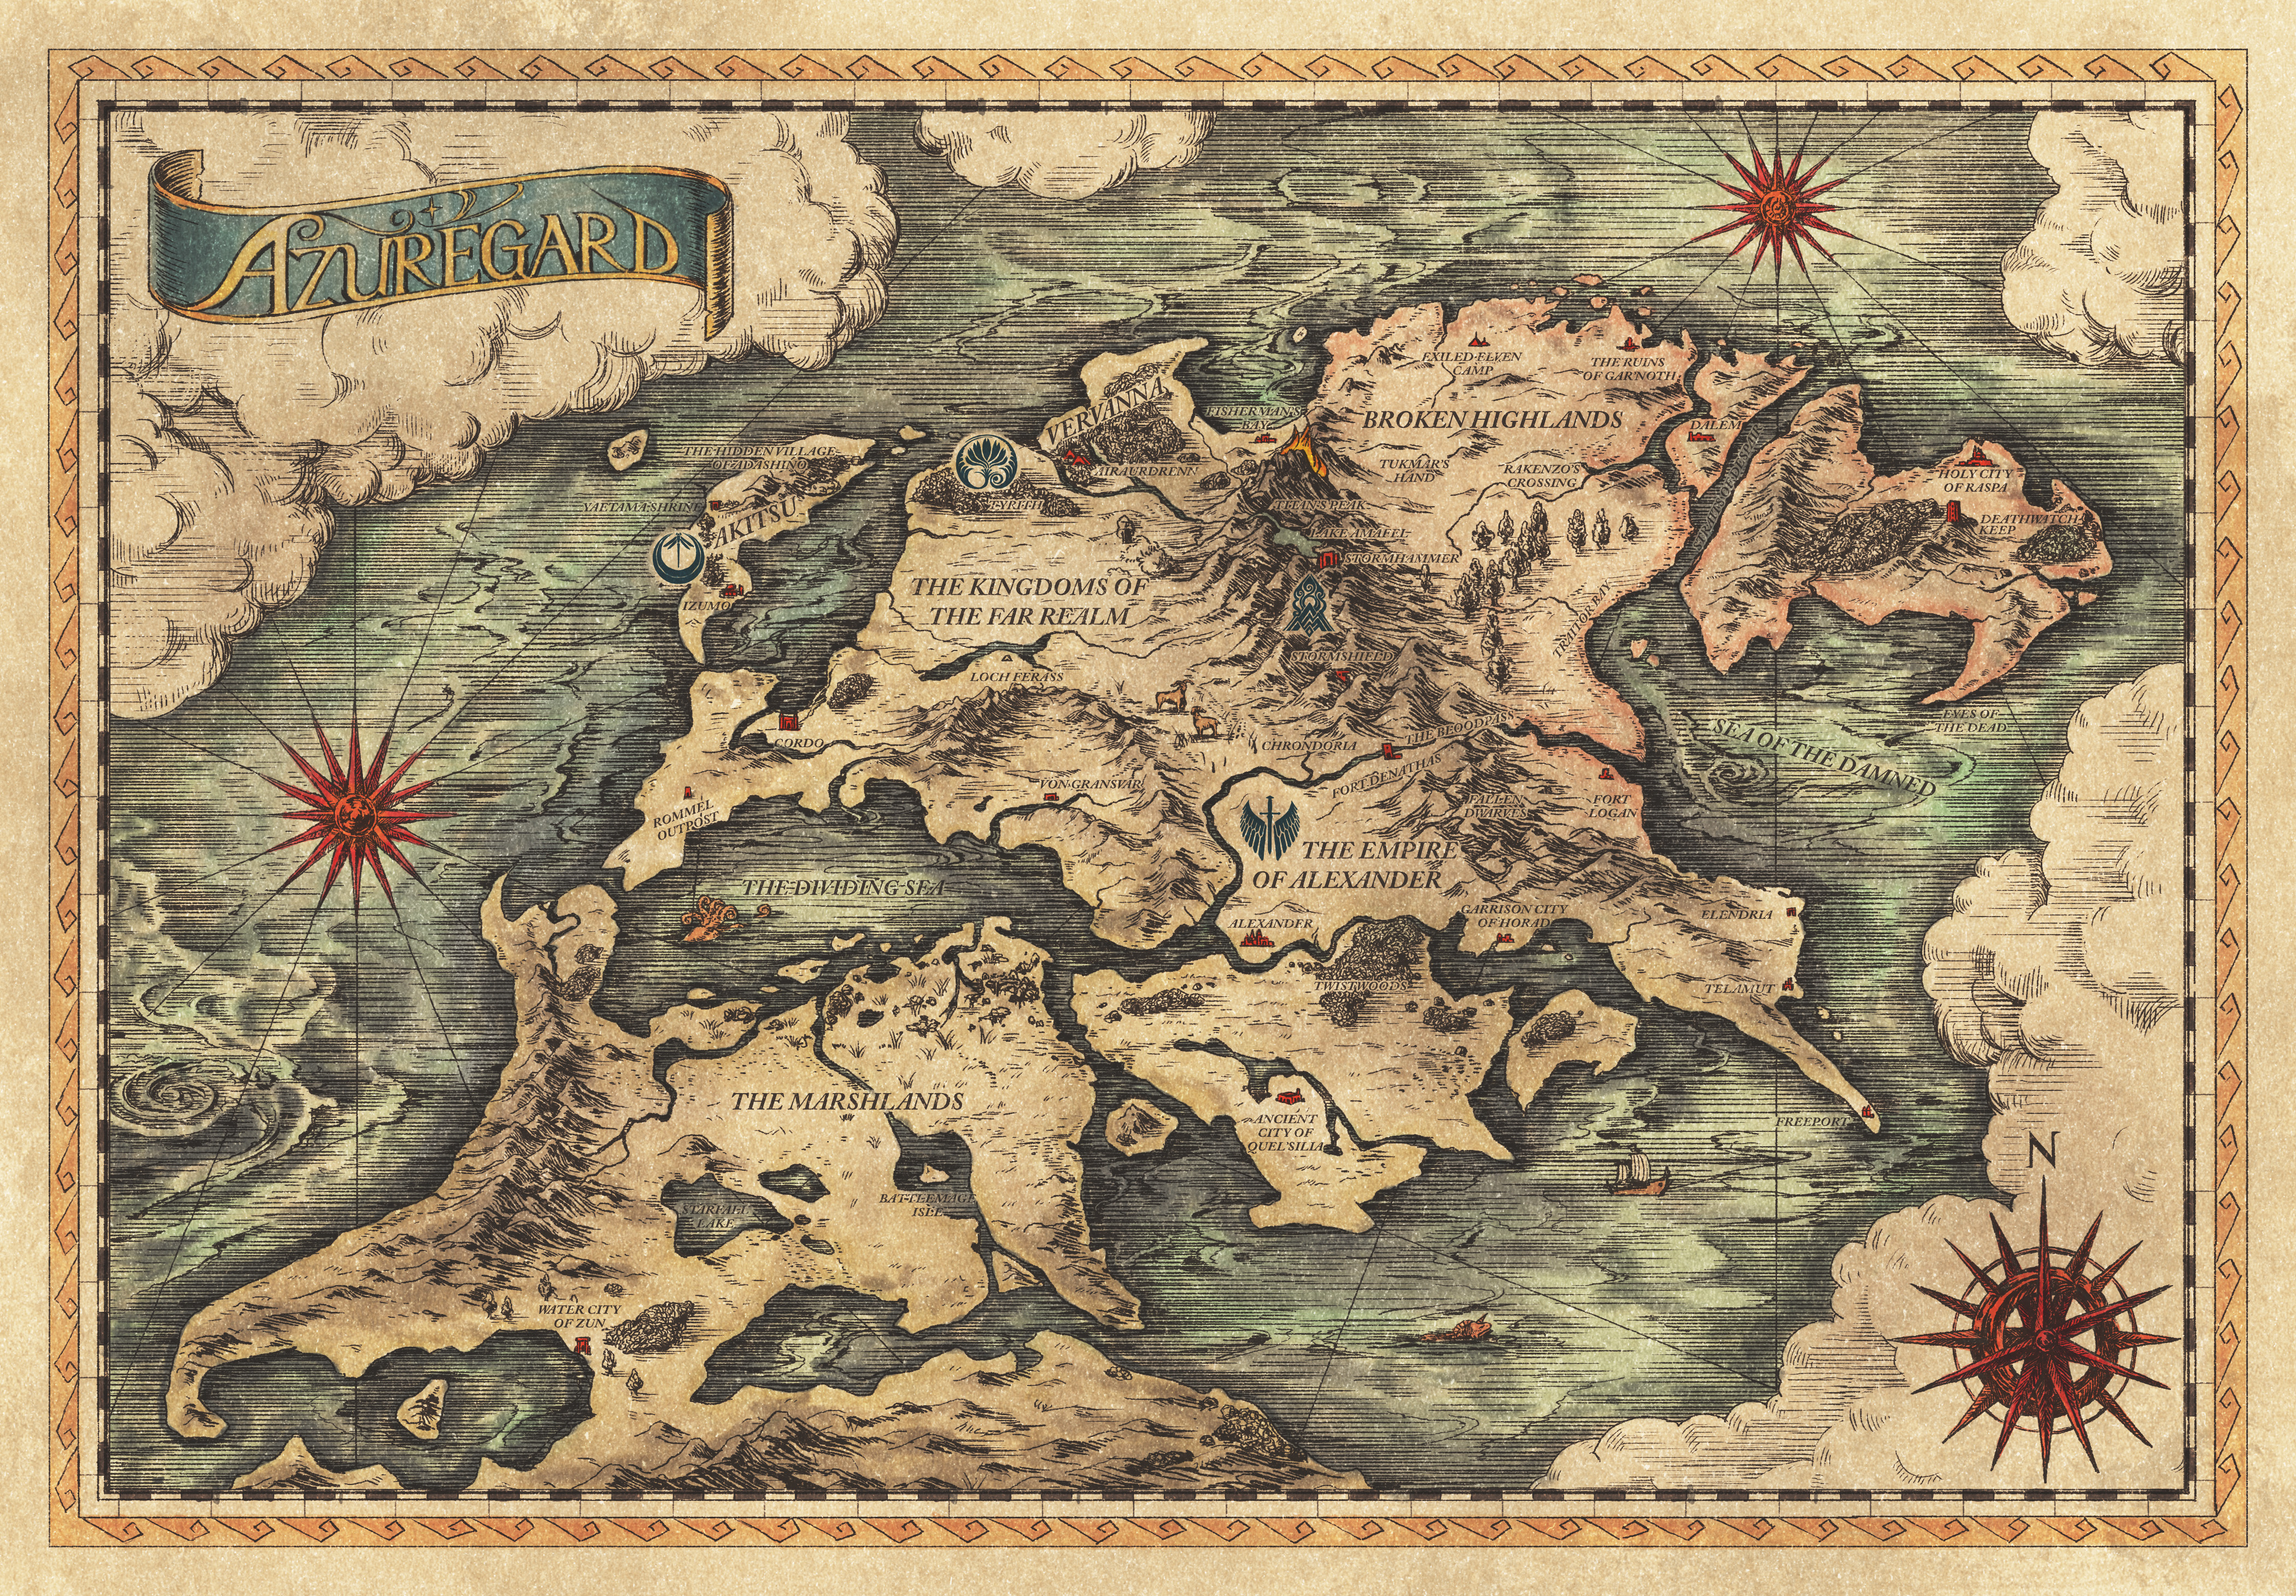 Westeros wallpaper wallpapersafari game of thrones world map wallpaper anime game map h wallpaper 4200x2920 gumiabroncs Image collections